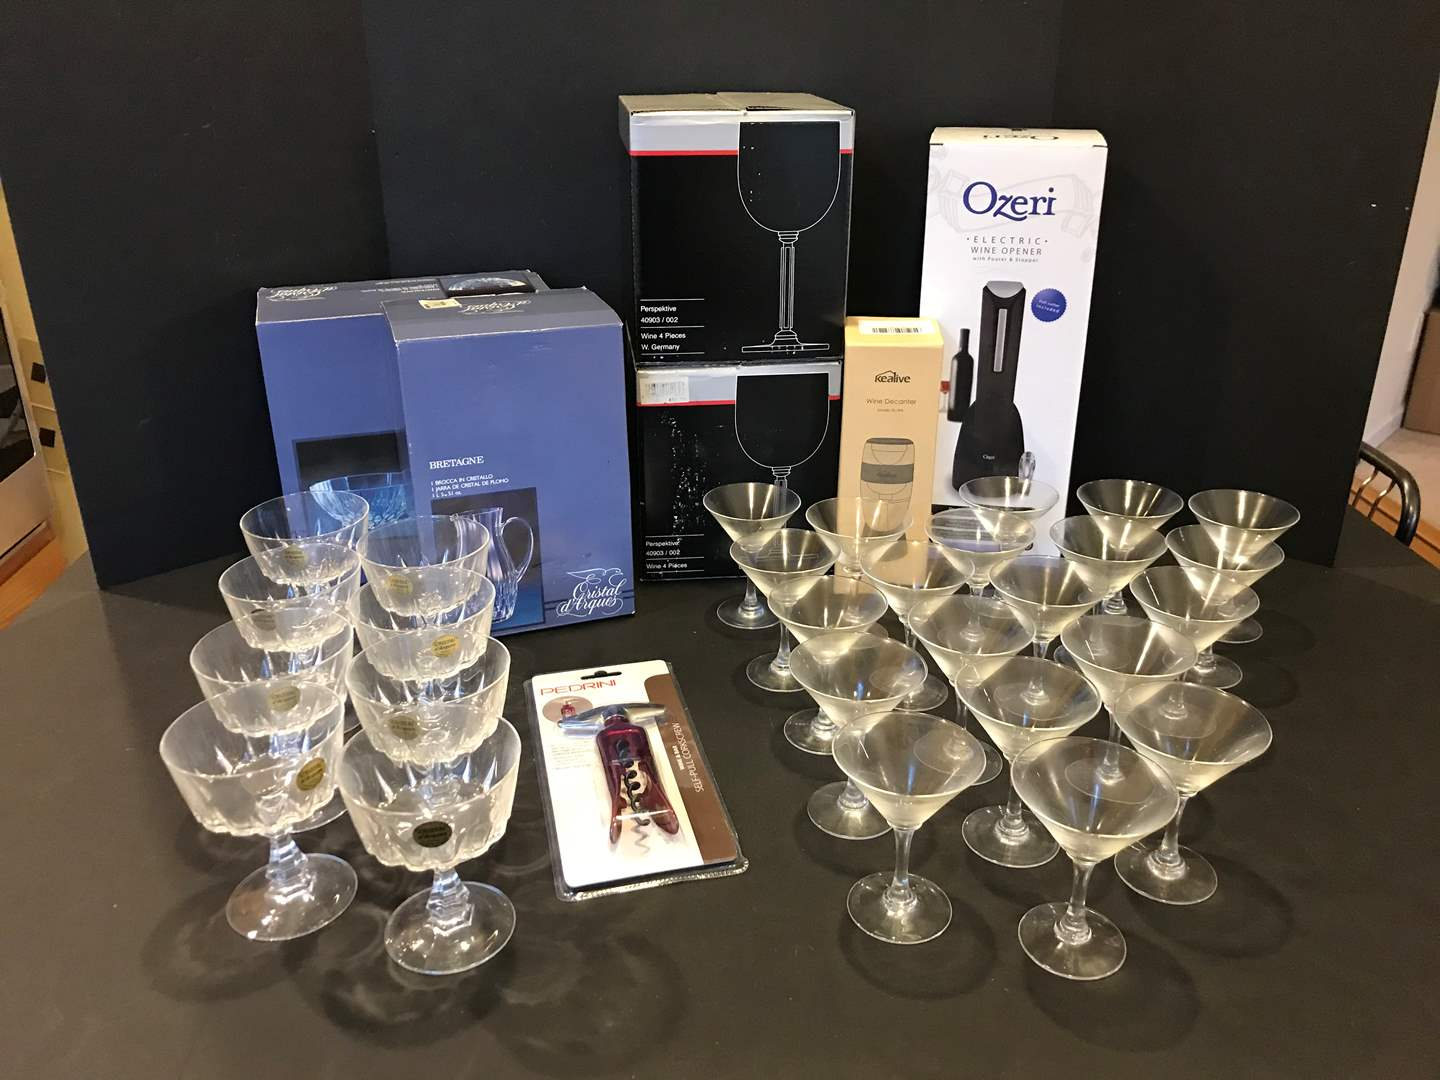 Lot # 90 - New in Box Mikasa Crystal Wine Glasses, New in Box Crystal Bowl & Pitcher, Ozeri Electric Wine Opener & More.. (main image)